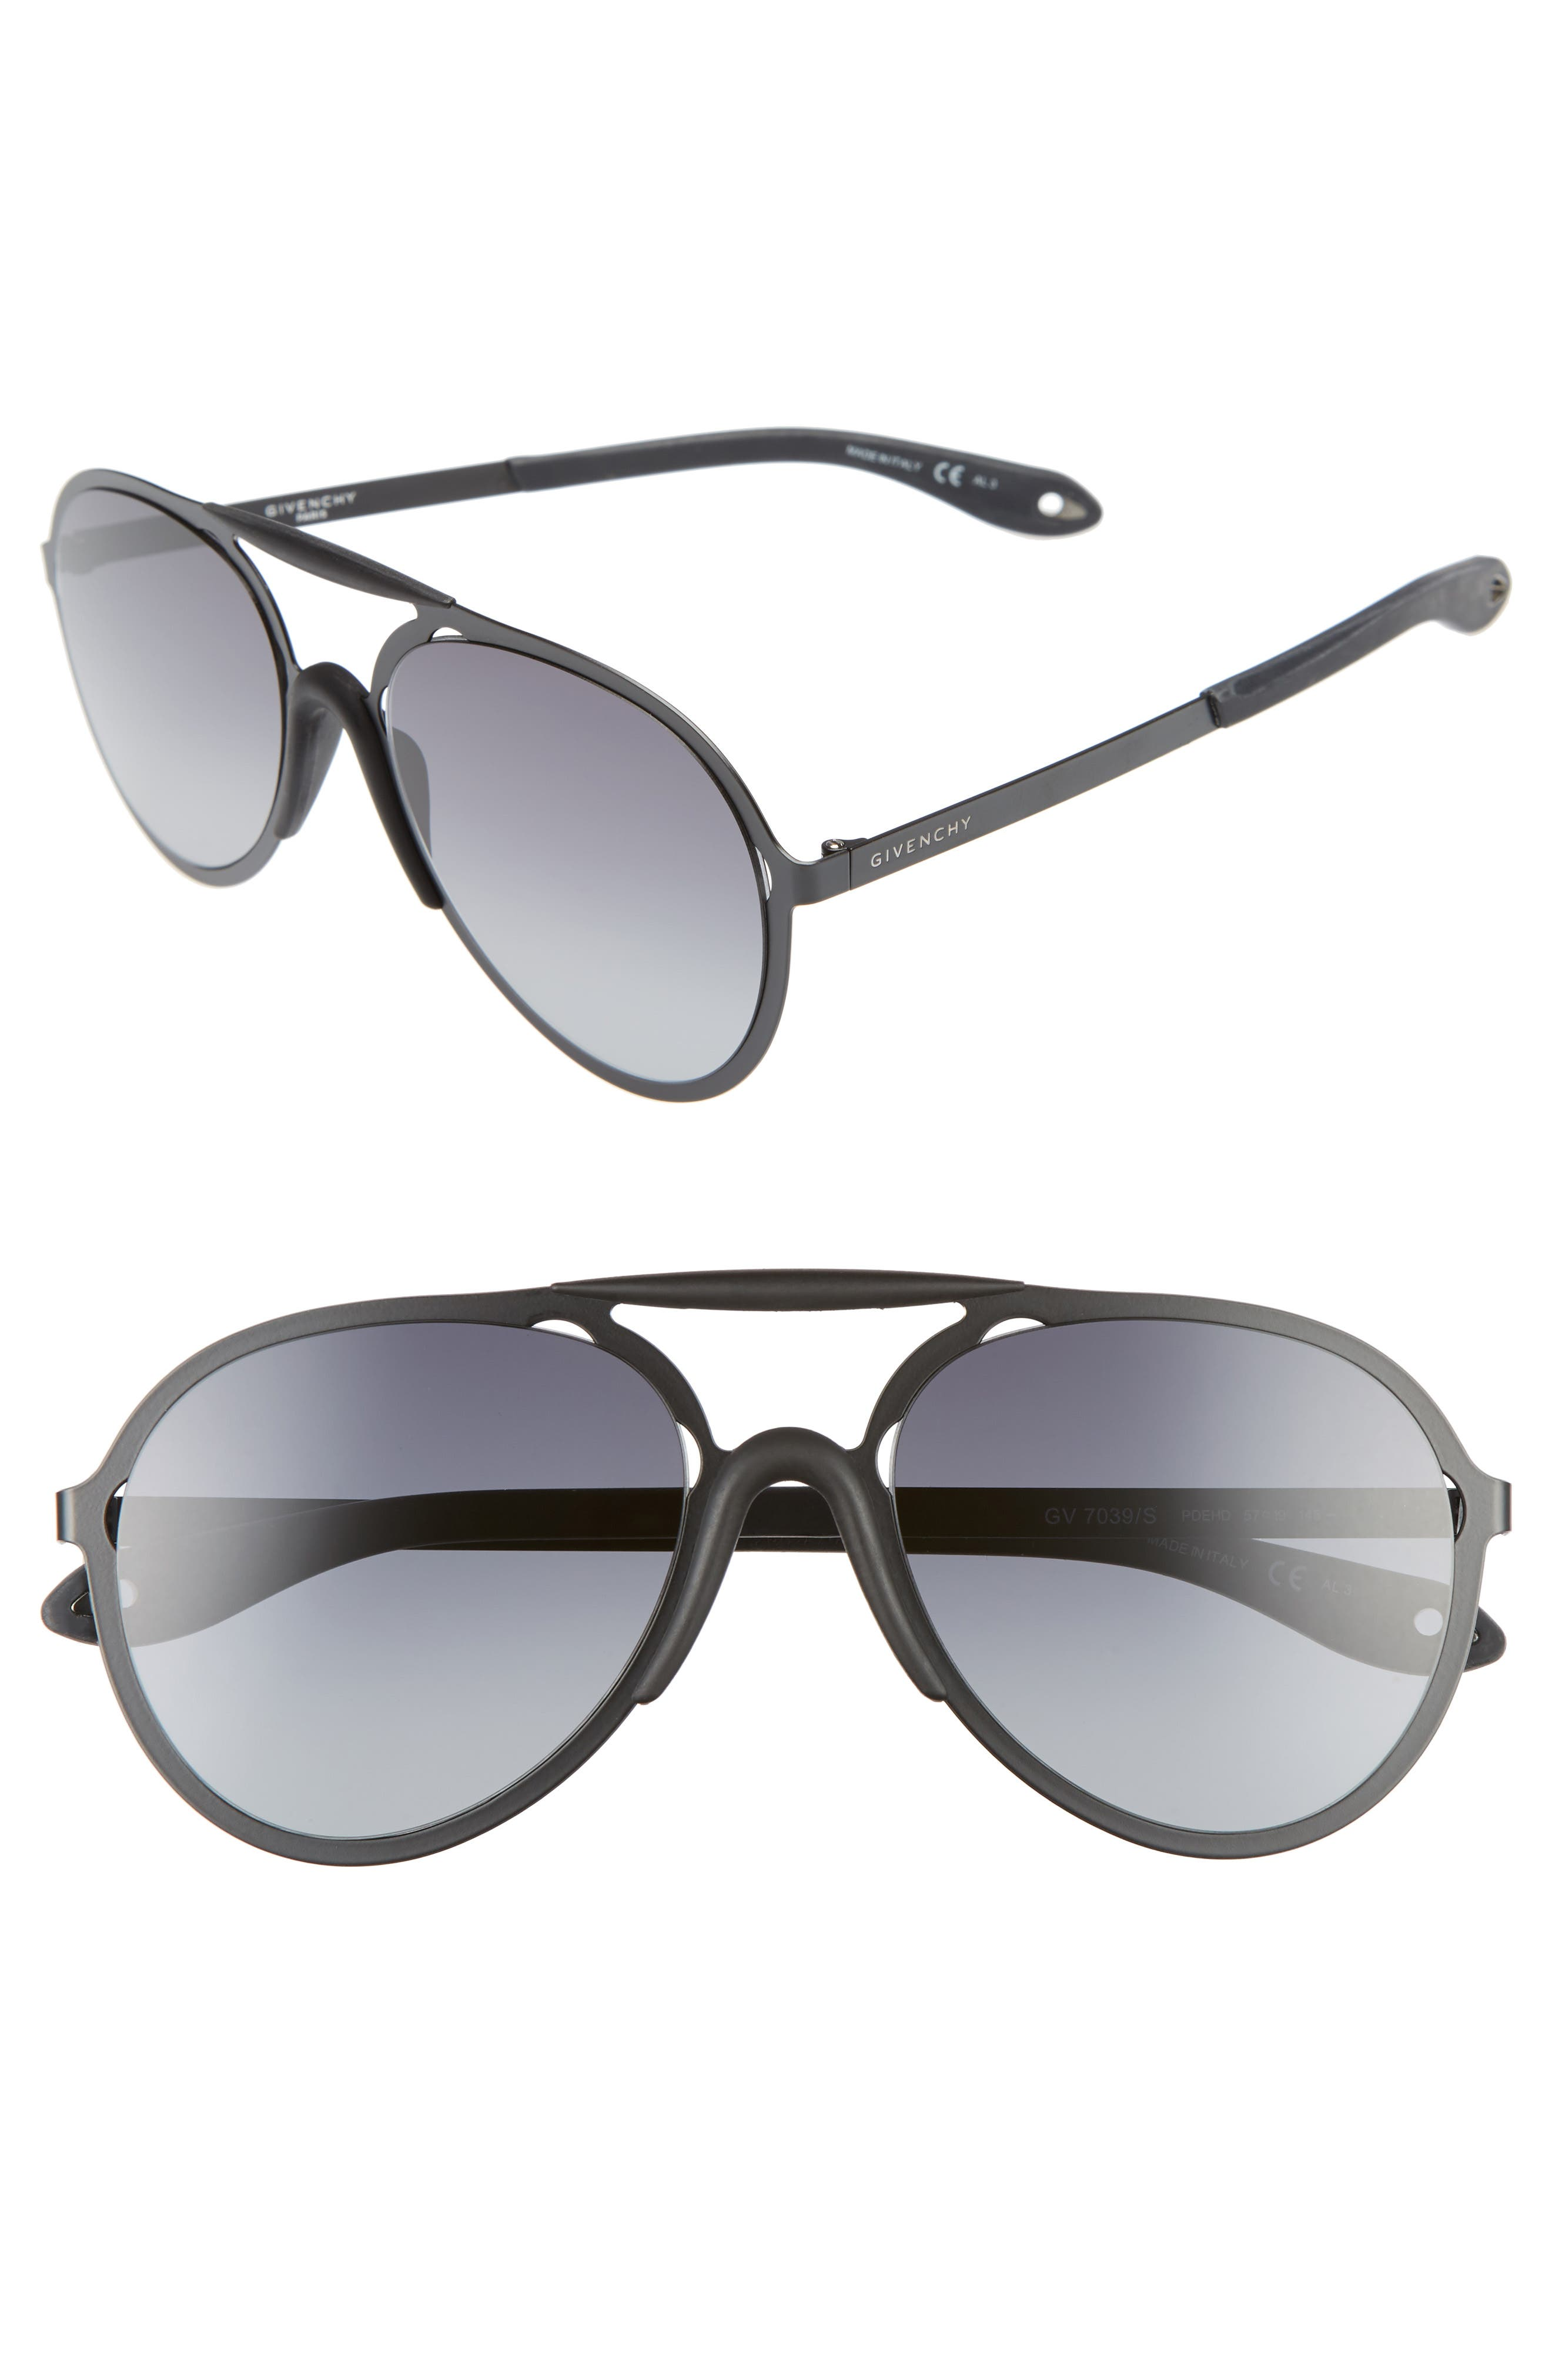 57mm Sunglasses,                             Alternate thumbnail 2, color,                             BLACK/ GREY GRADIENT